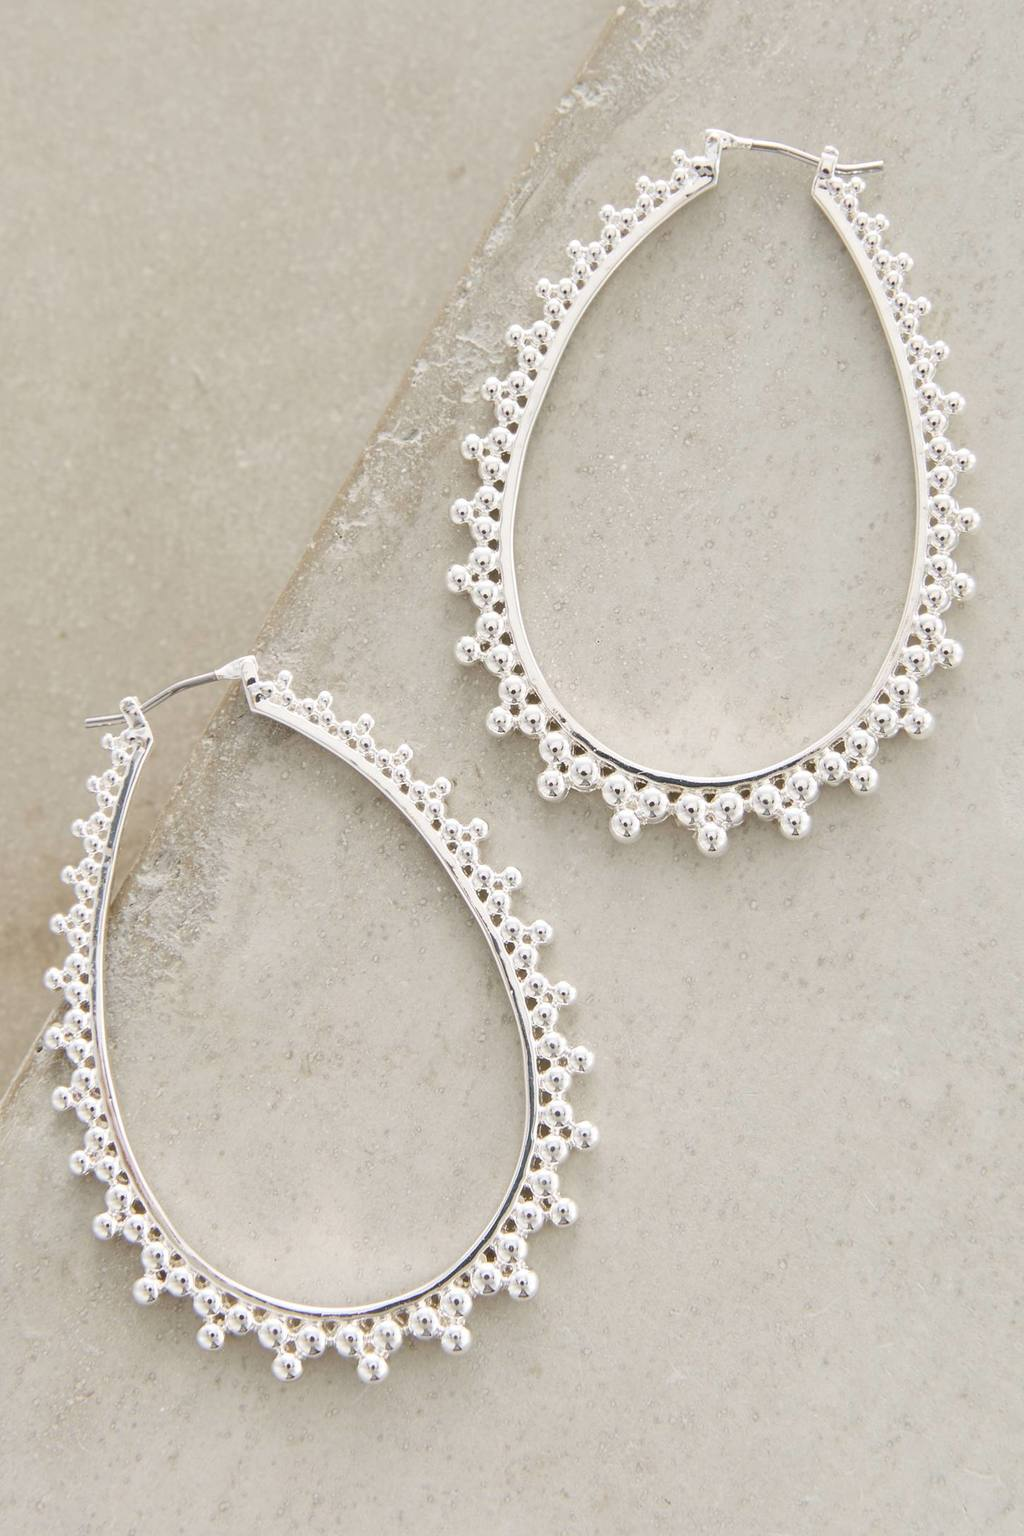 Stippled Hoop Earrings - predominant colour: silver; occasions: evening, occasion; style: hoop; length: mid; size: large/oversized; material: chain/metal; fastening: pierced; finish: metallic; season: s/s 2016; wardrobe: event